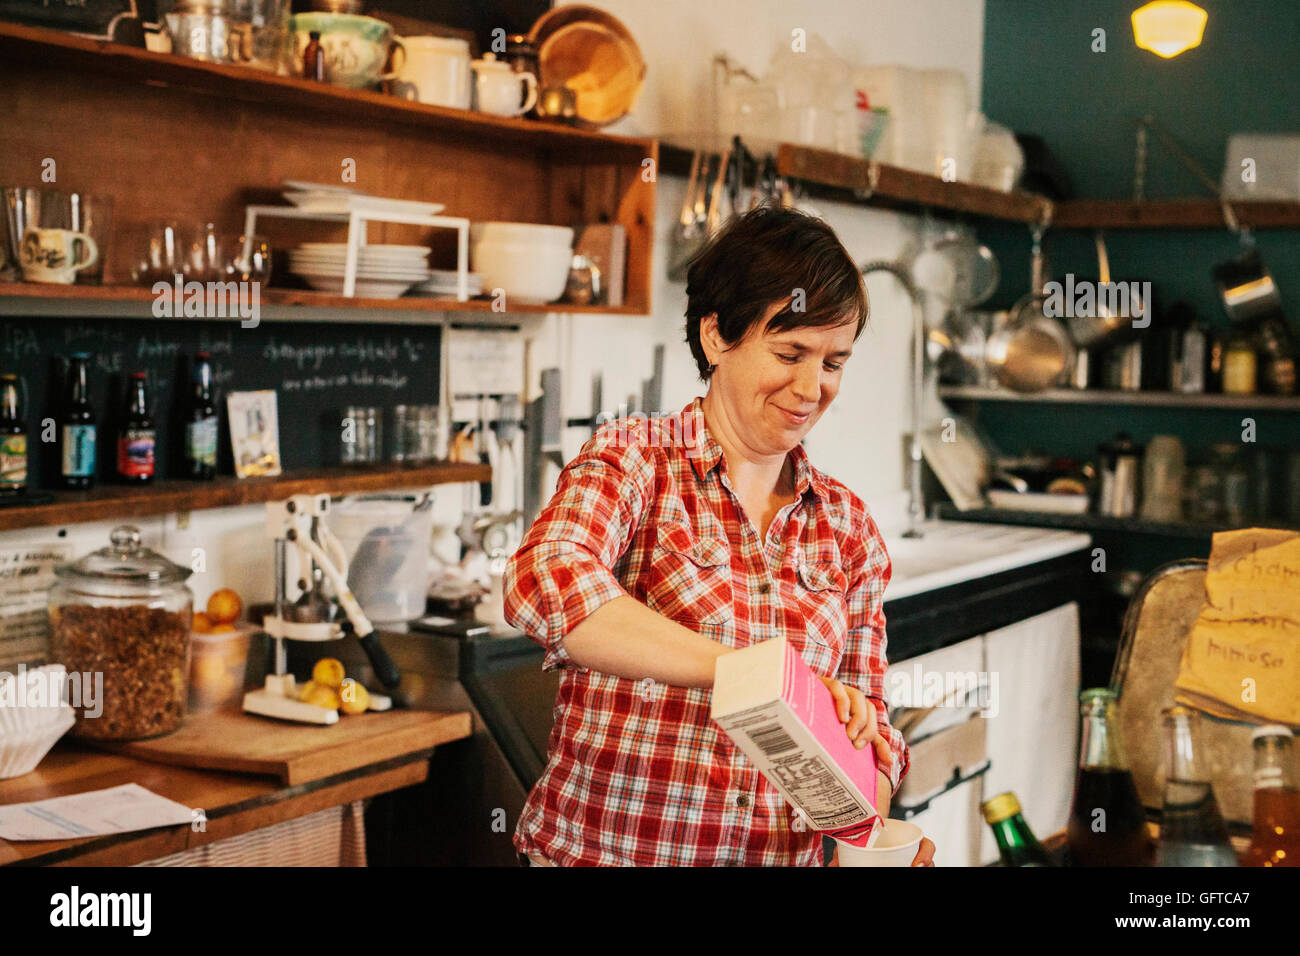 A woman working in a small commercial kitchen a coffee shop owner - Stock Image